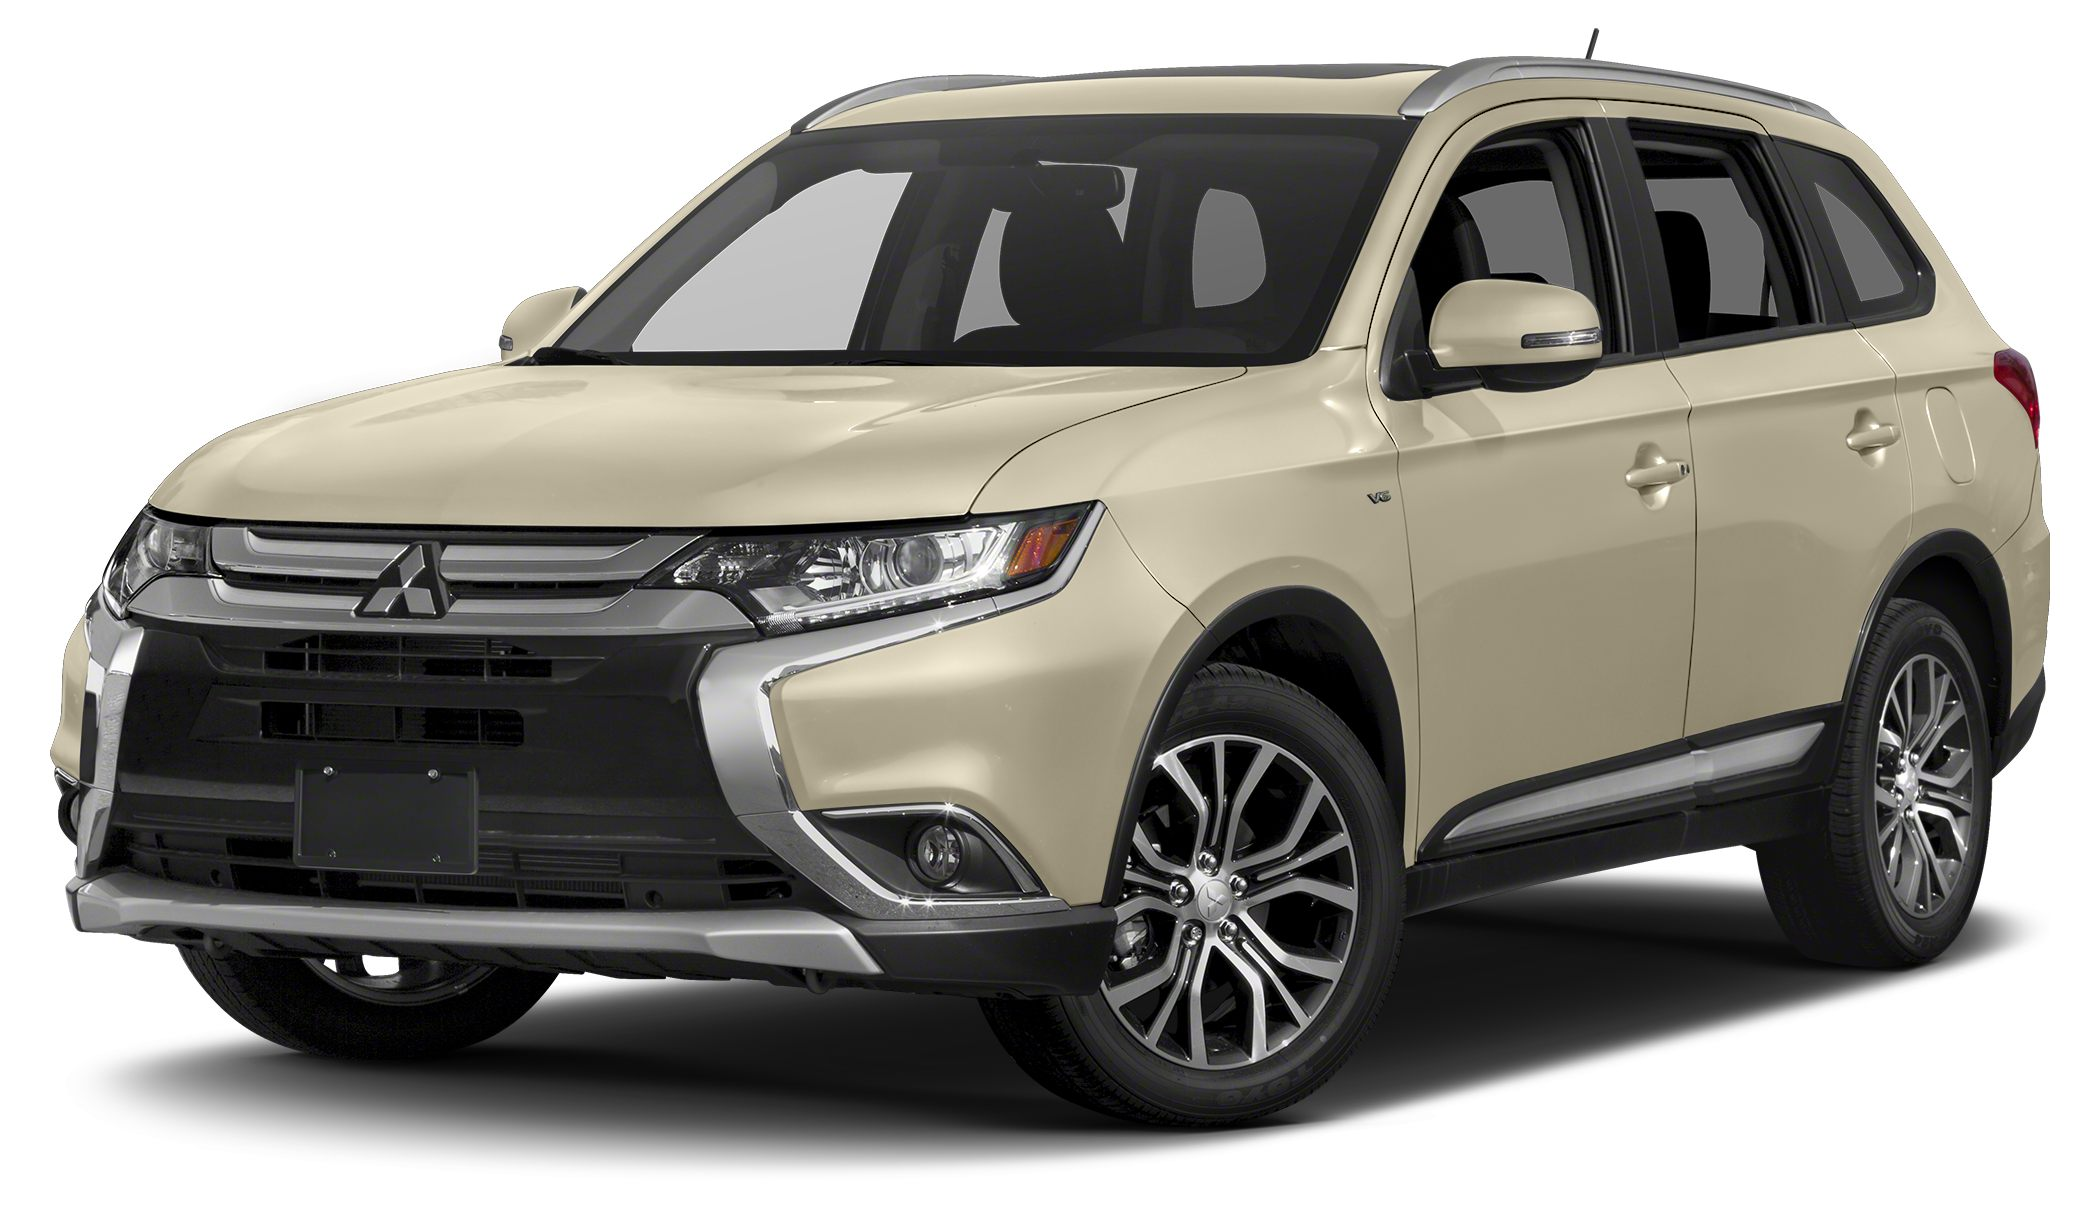 2016 Mitsubishi Outlander SEL THIS VEHICLE COMES WITH OUR BEST PRICE GUARANTEE FIND A BETTER ON A